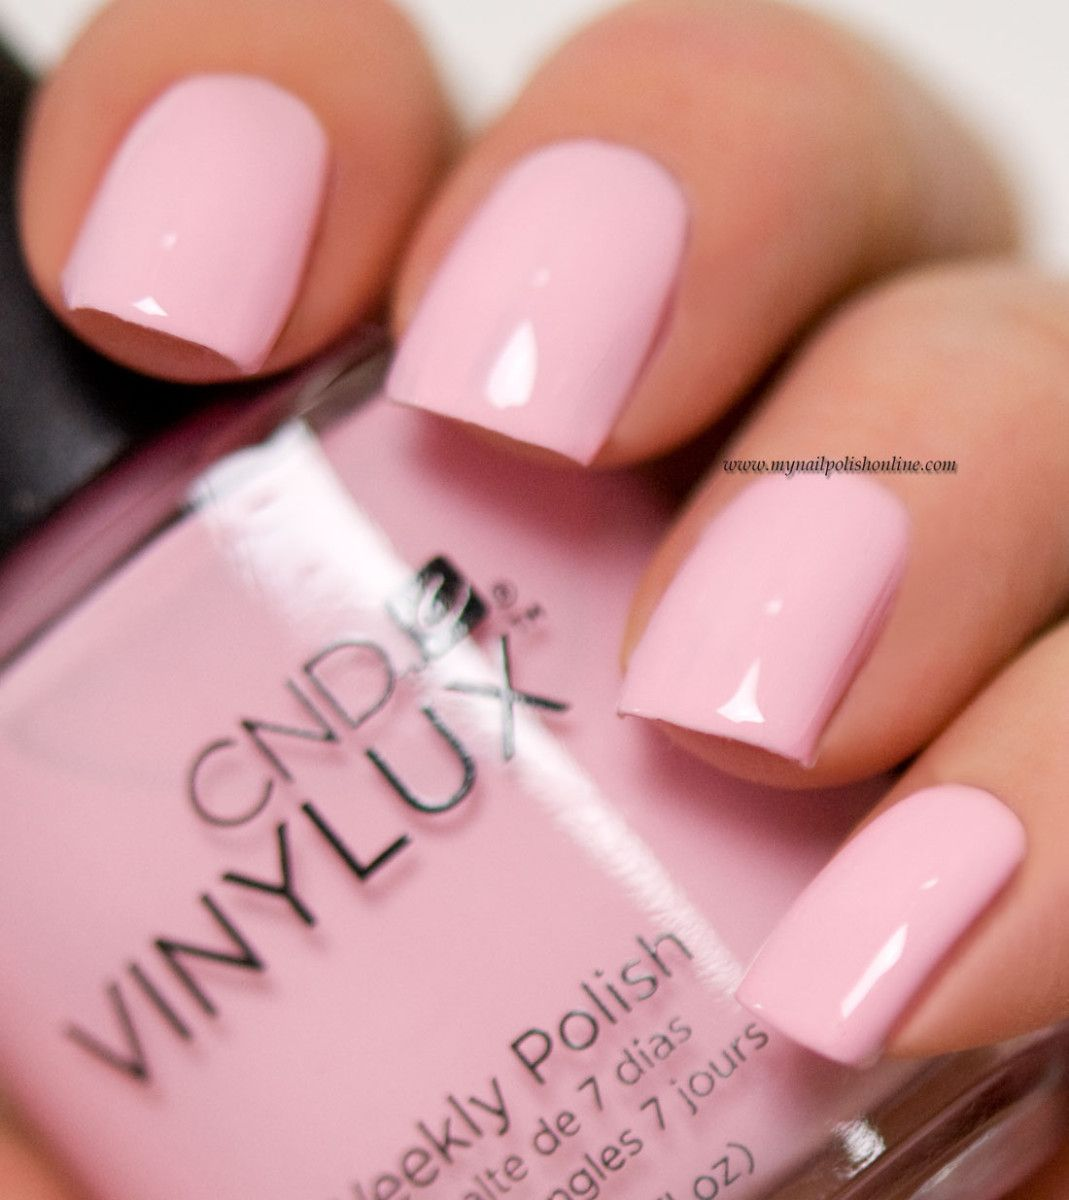 CND Vinylux - Be Demure | Cnd vinylux, Nail polish online and Cnd nails